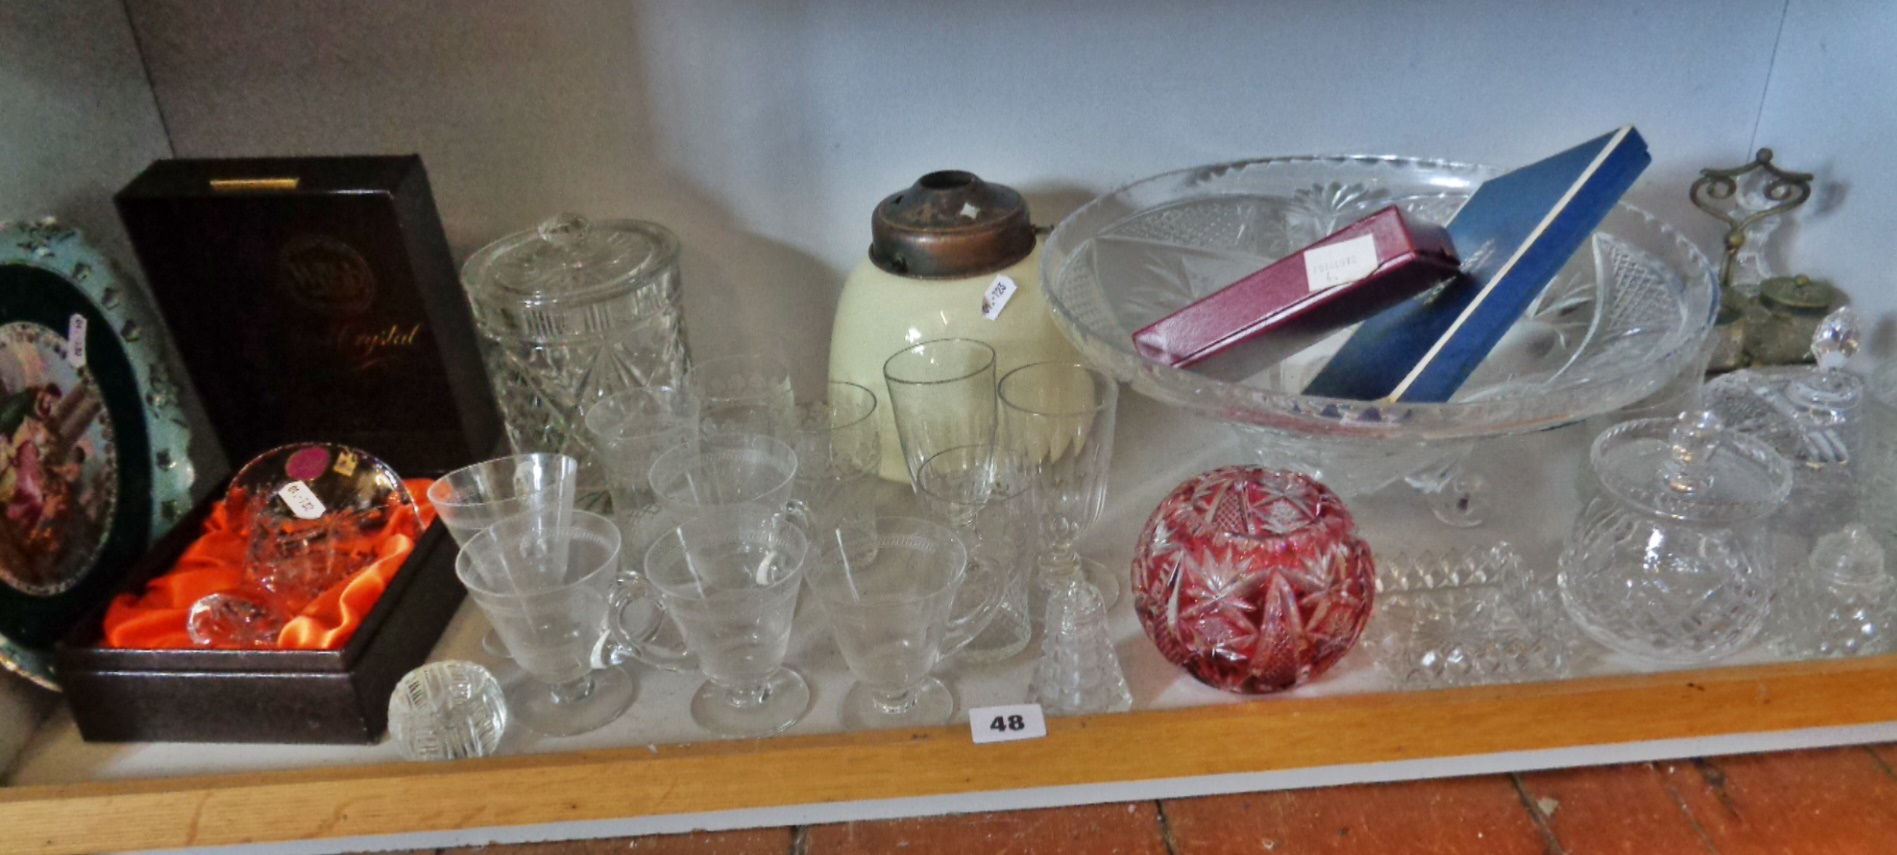 Lot 48 - Royal Worcester boxed items, glassware, inc. custard cups, Webb Crystal boxed vase, etc.